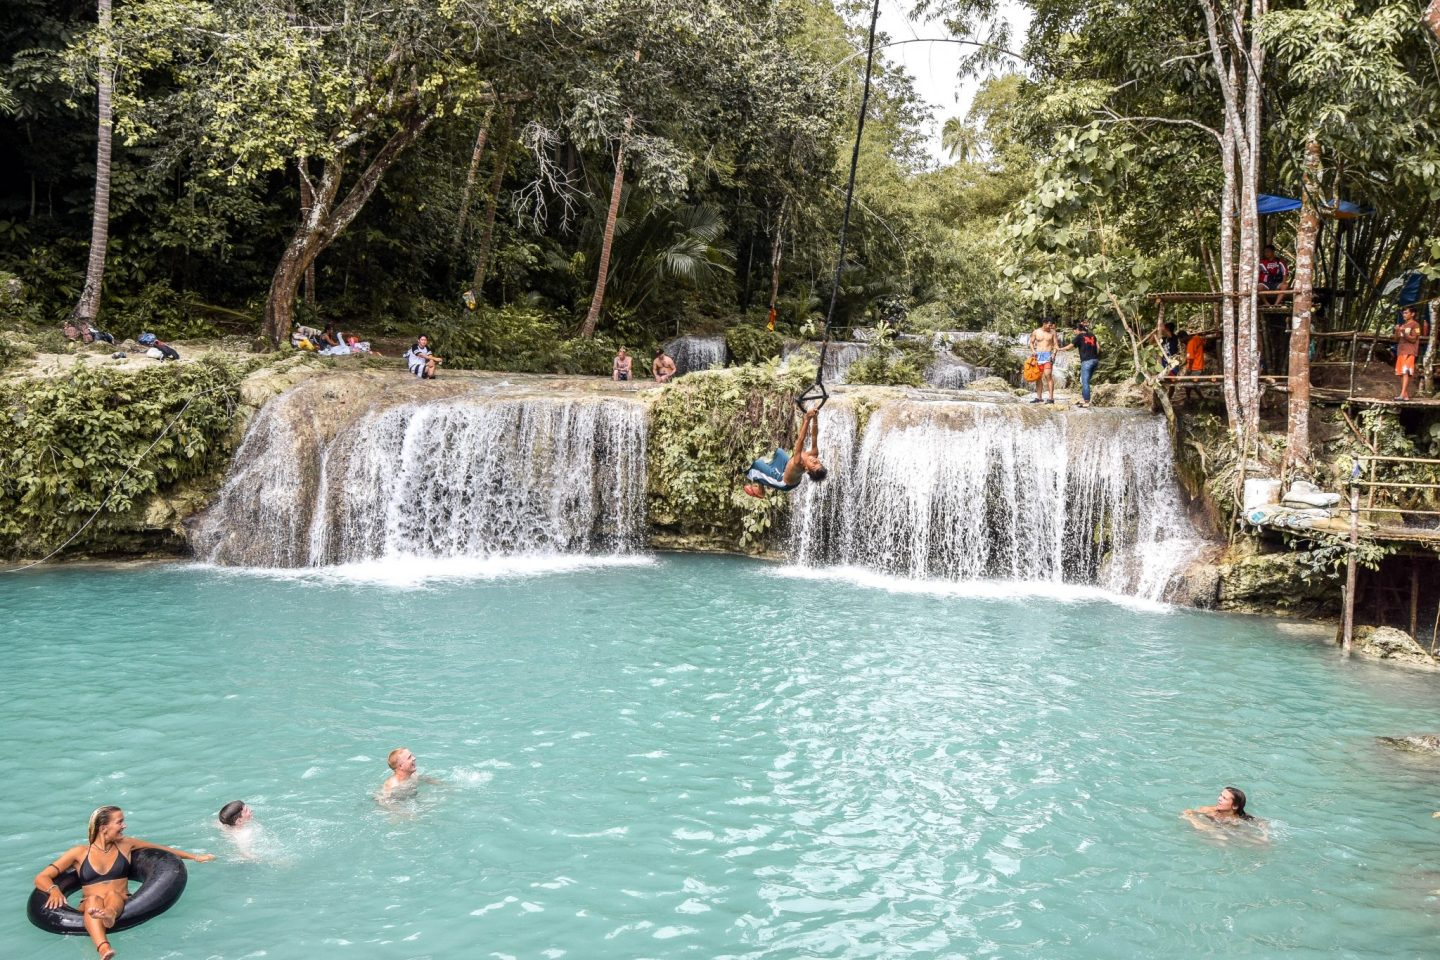 Wanderers & Warriors - Charlie & Lauren UK Travel Couple - Cambugahay Falls Siquijor tourist spots - Things To Do In Siquijor Island